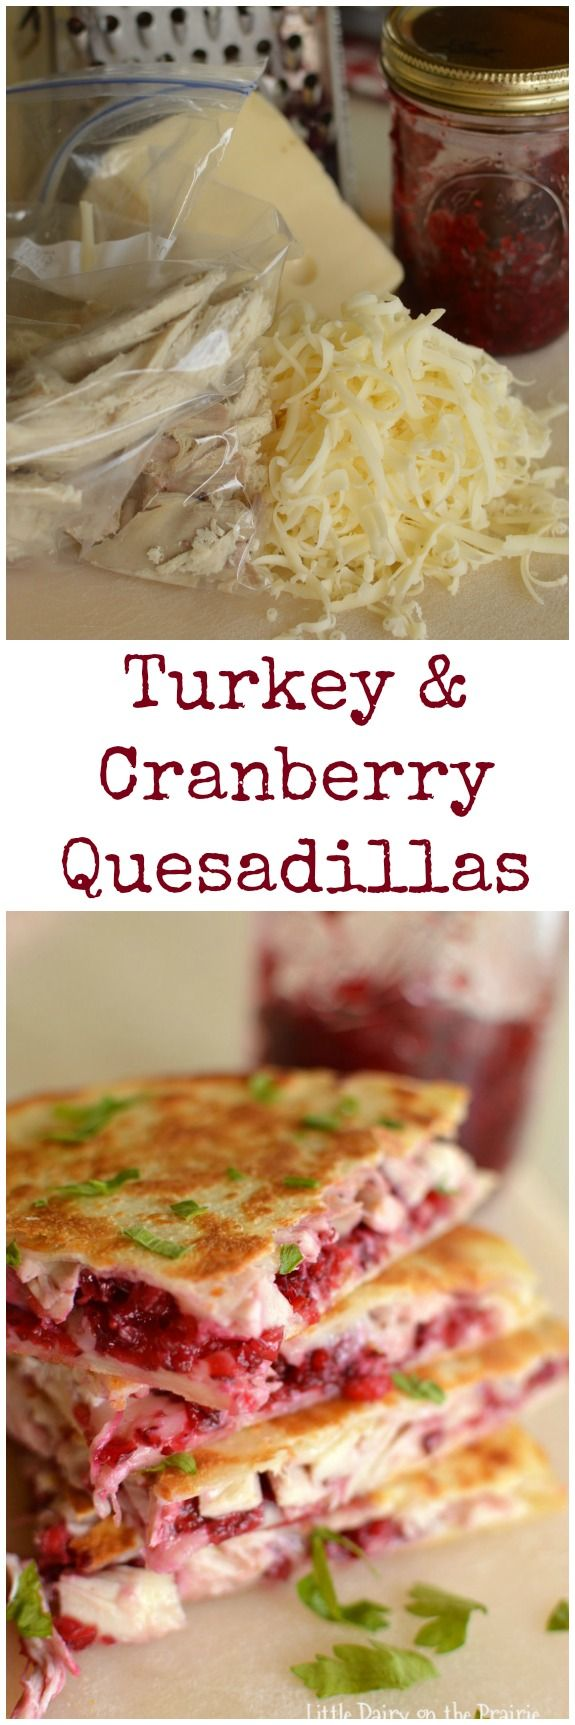 Turkey and Cranberry Quesadillas are quick and easy way to use up leftover turkey. Trust me, no complaints about leftovers on this one! | Little Dairy on the Prairie                                                                                                                                                                                 More